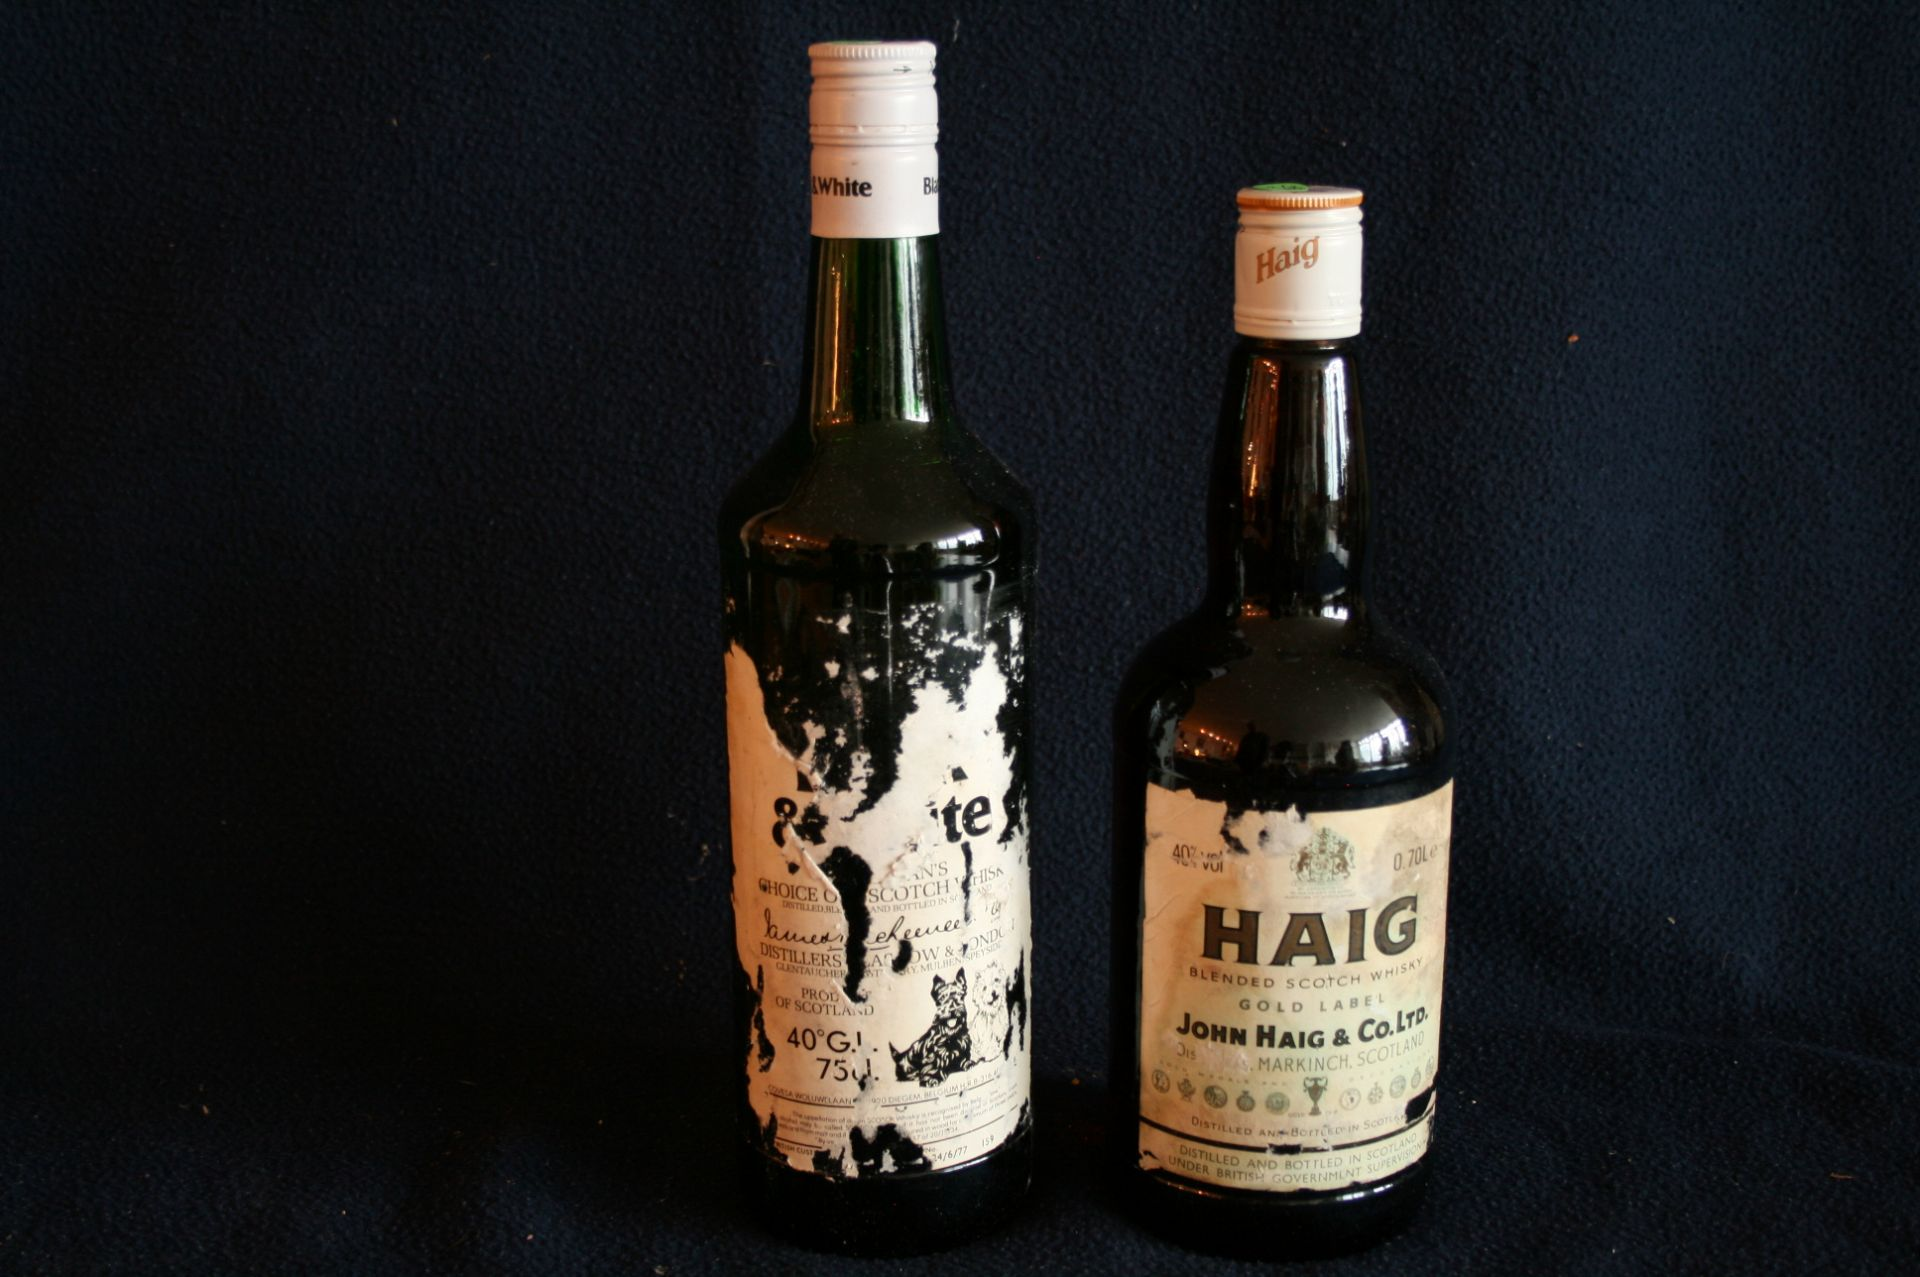 1 bouteille WHISKY HAIG, Blended scotch + 1 bouteille Black & White - 1 bottle [...]